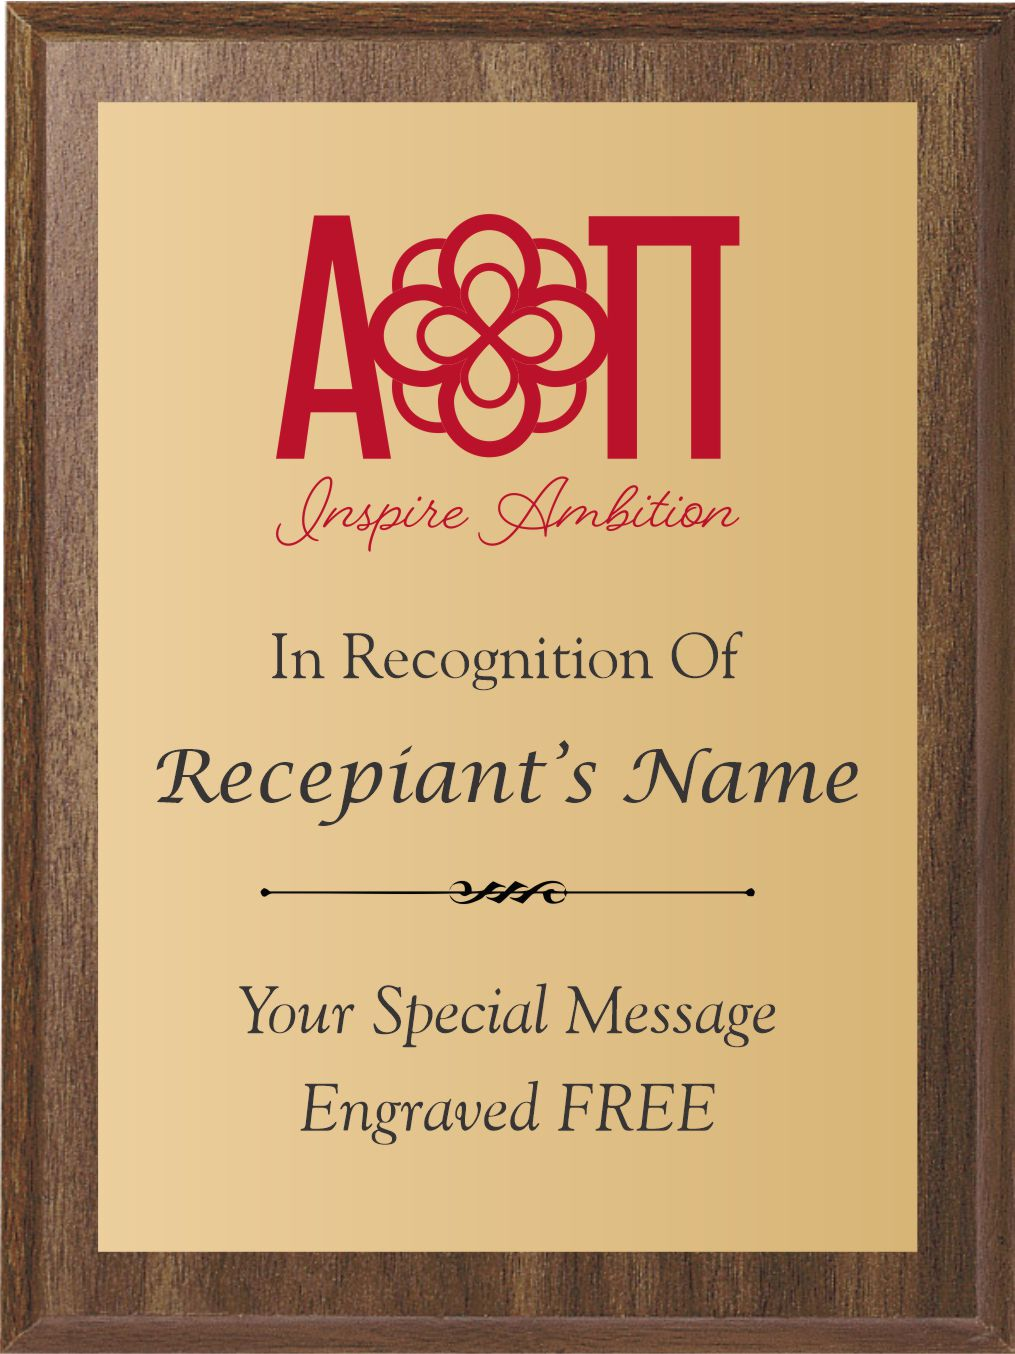 Alpha Omicron Pi Awards